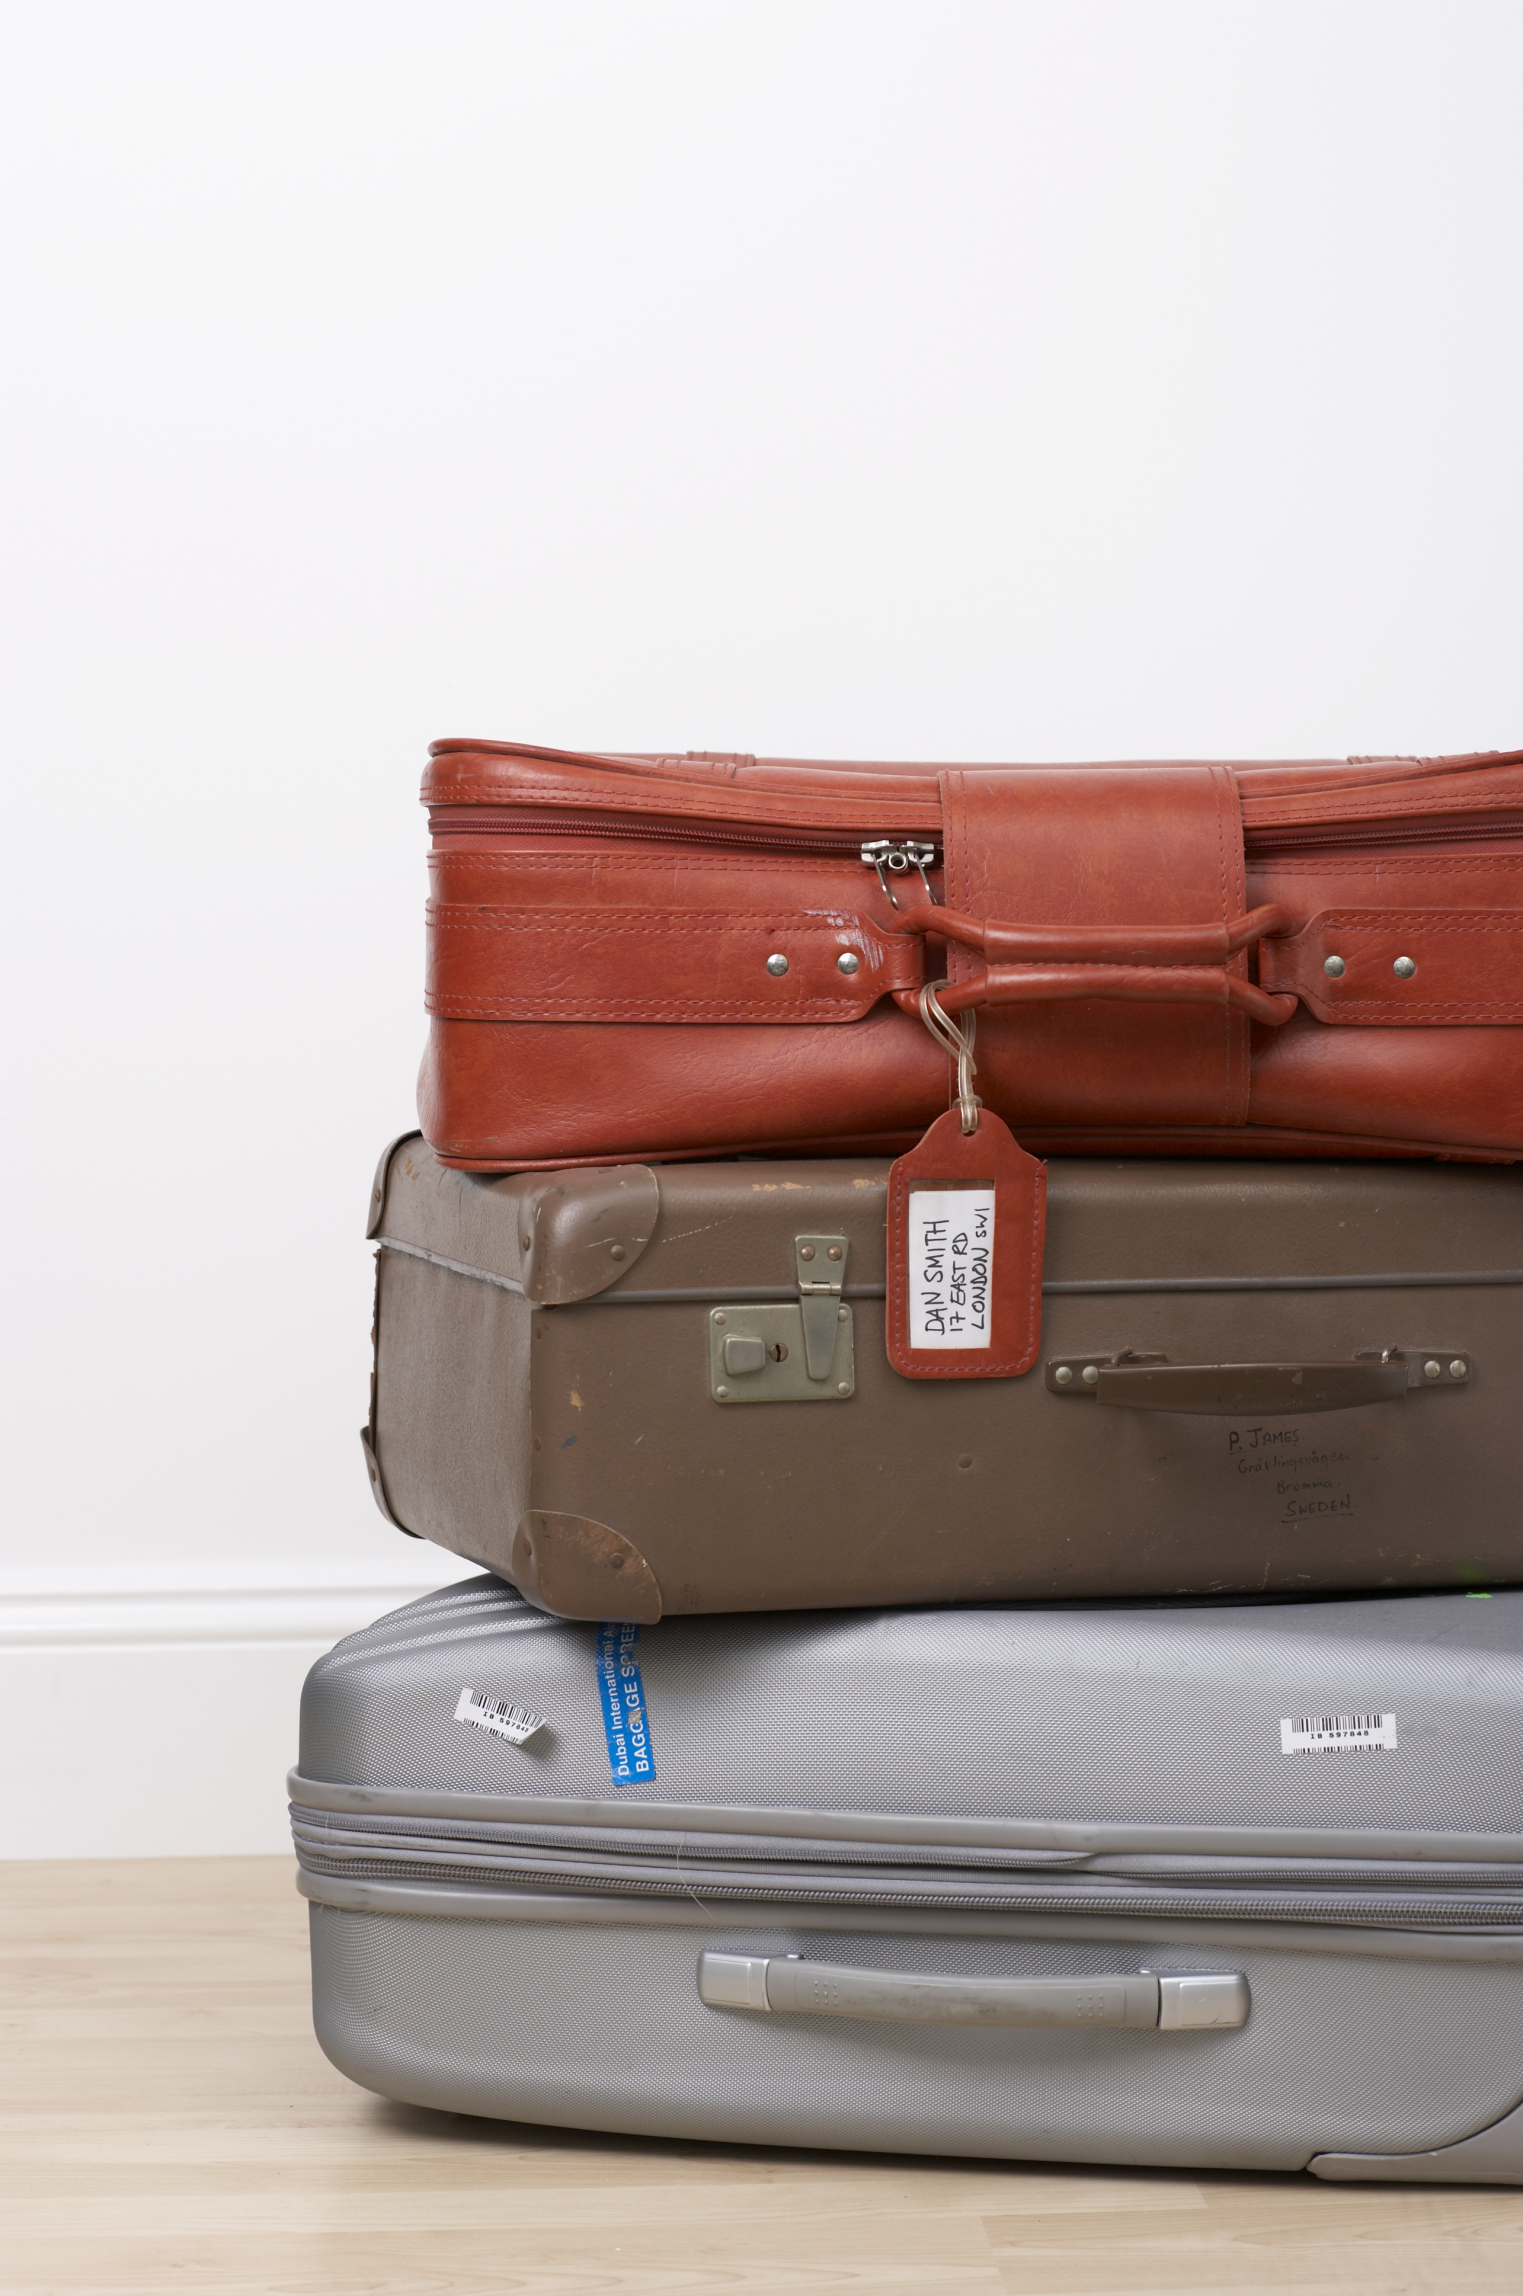 debb99b05d93 How to Assess Luggage Linear Dimensions   USA Today